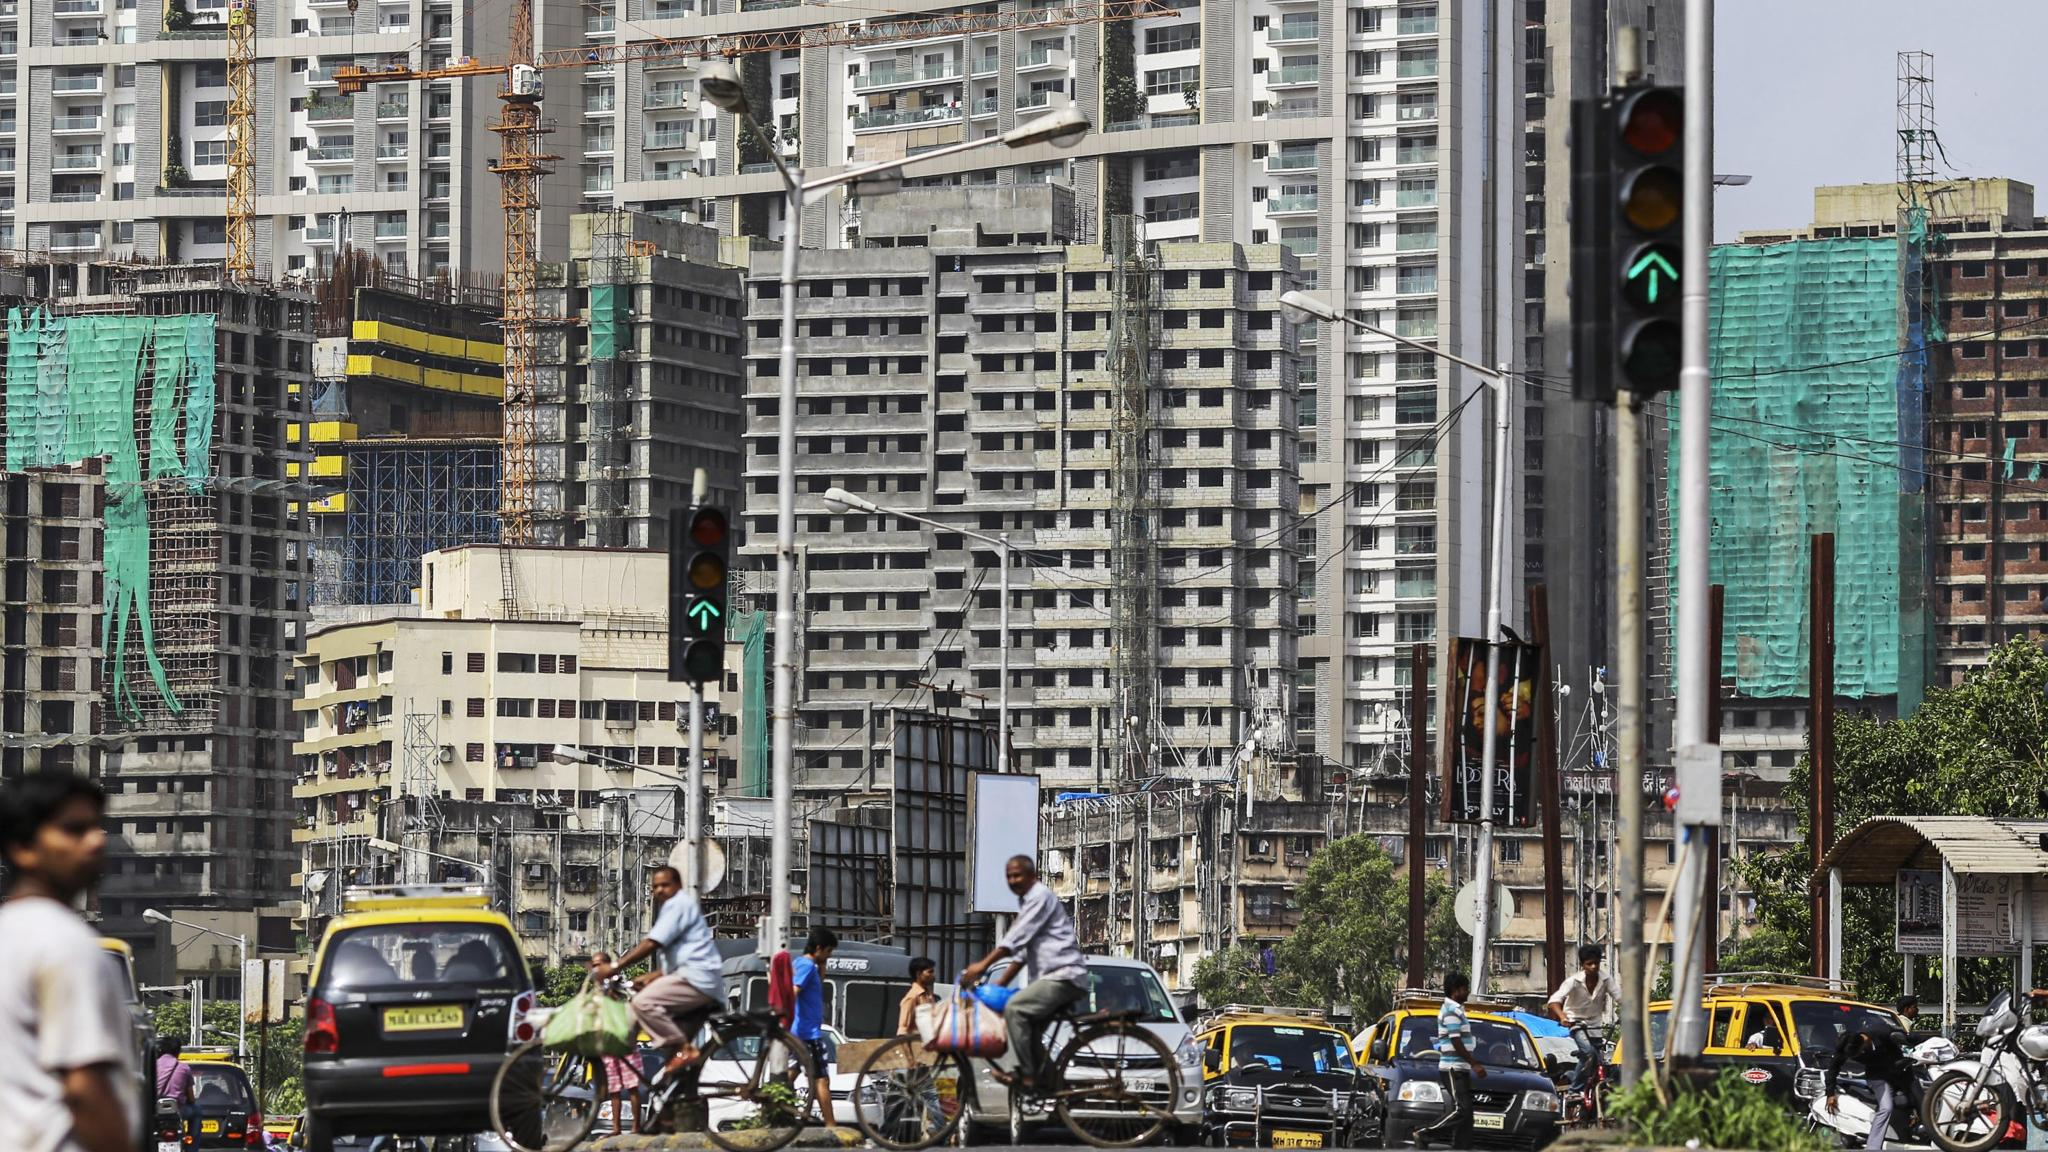 Mumbai's young professionals struggle to buy homes | Financial Times